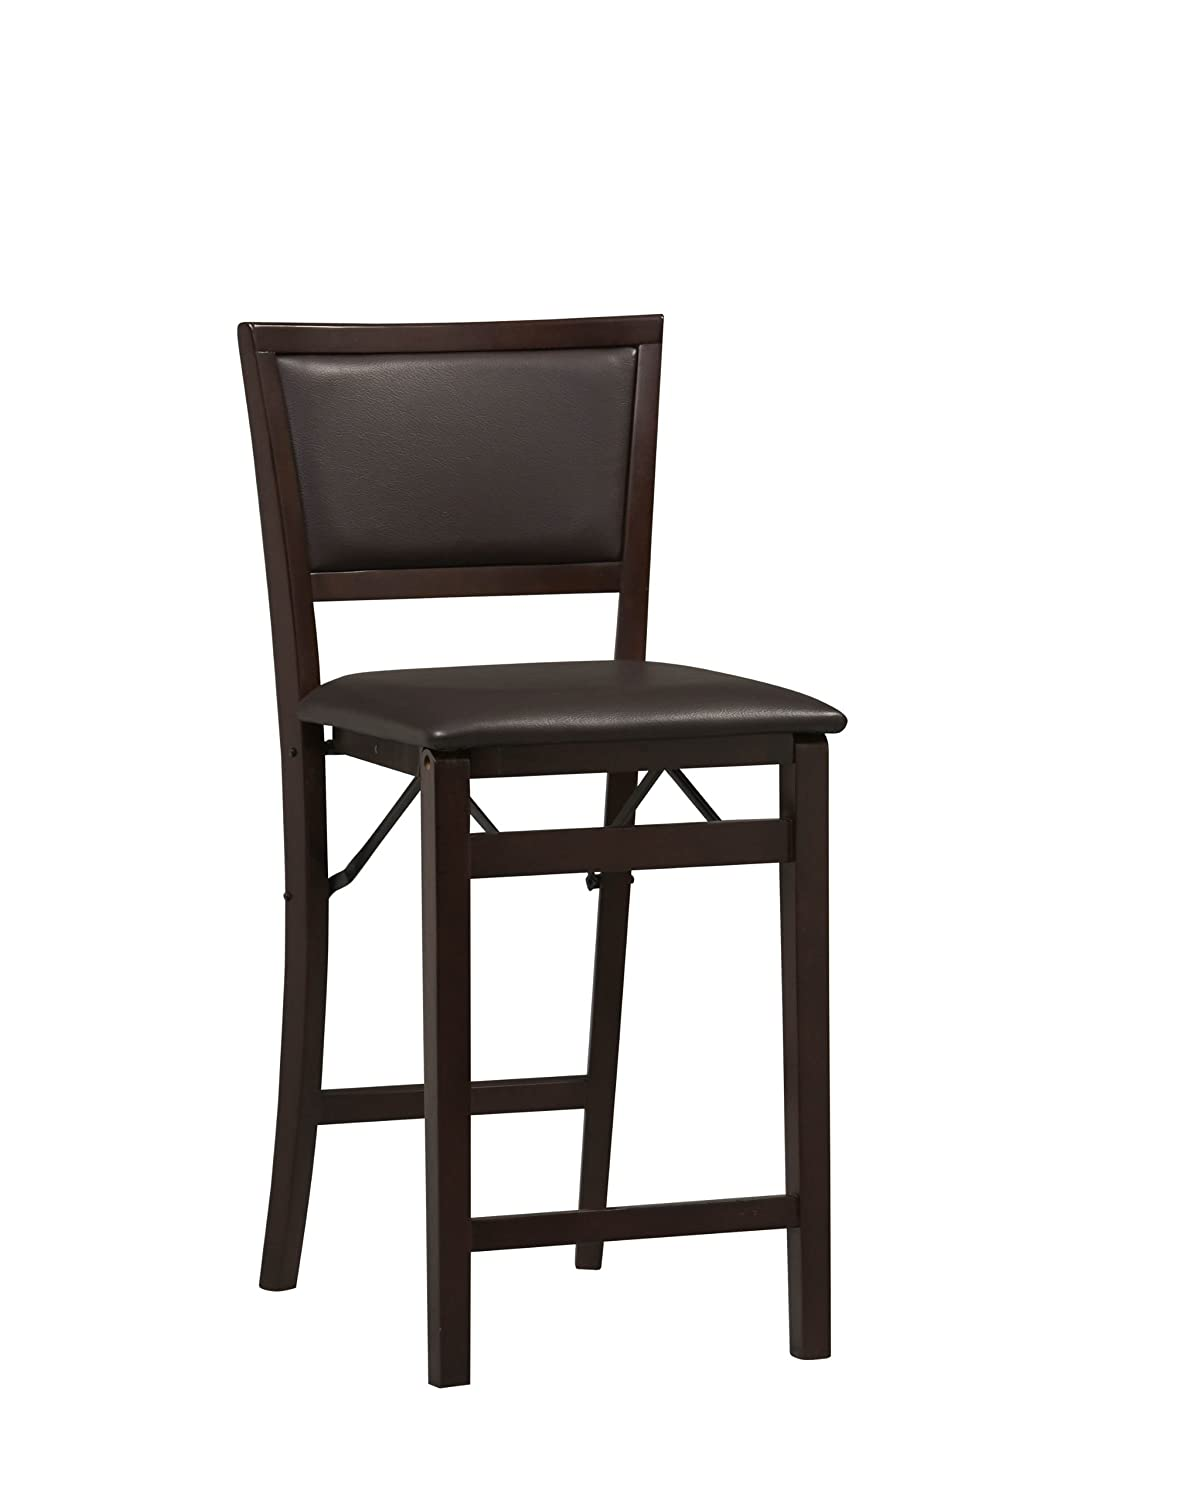 Amazon.com Linon Home Decor Keira Pad Back Folding Counter Stool 24-Inch Kitchen u0026 Dining  sc 1 st  Amazon.com : counter bar stools with backs - islam-shia.org